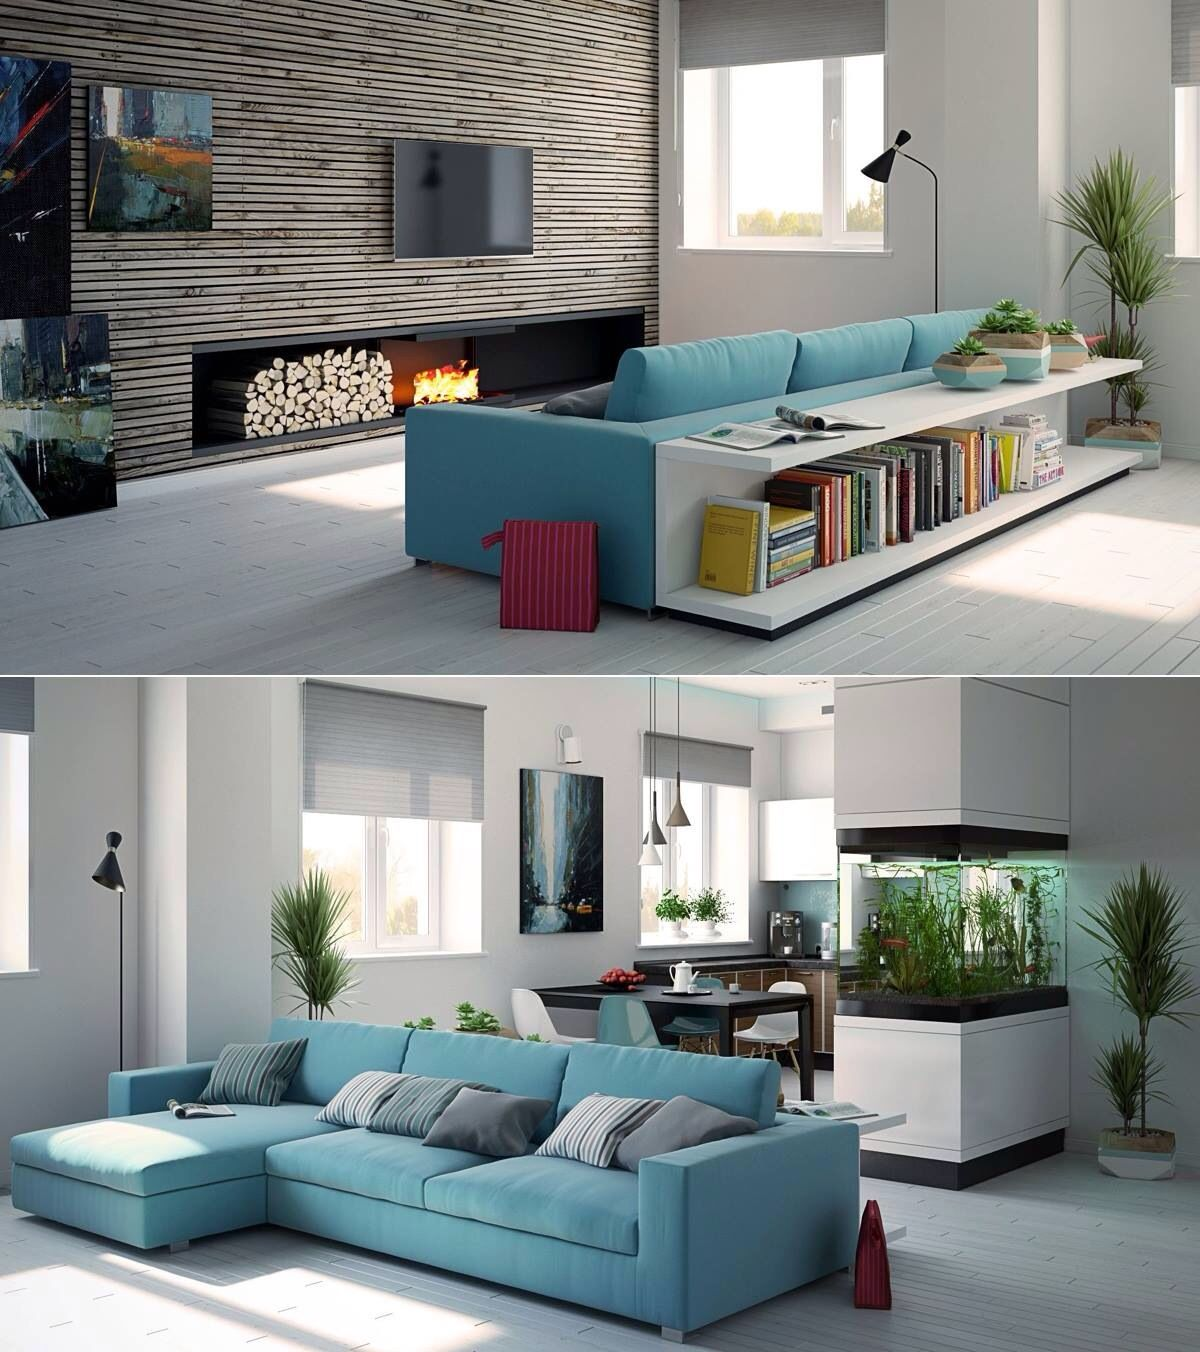 Love those colors | White Decor and Designs | Pinterest